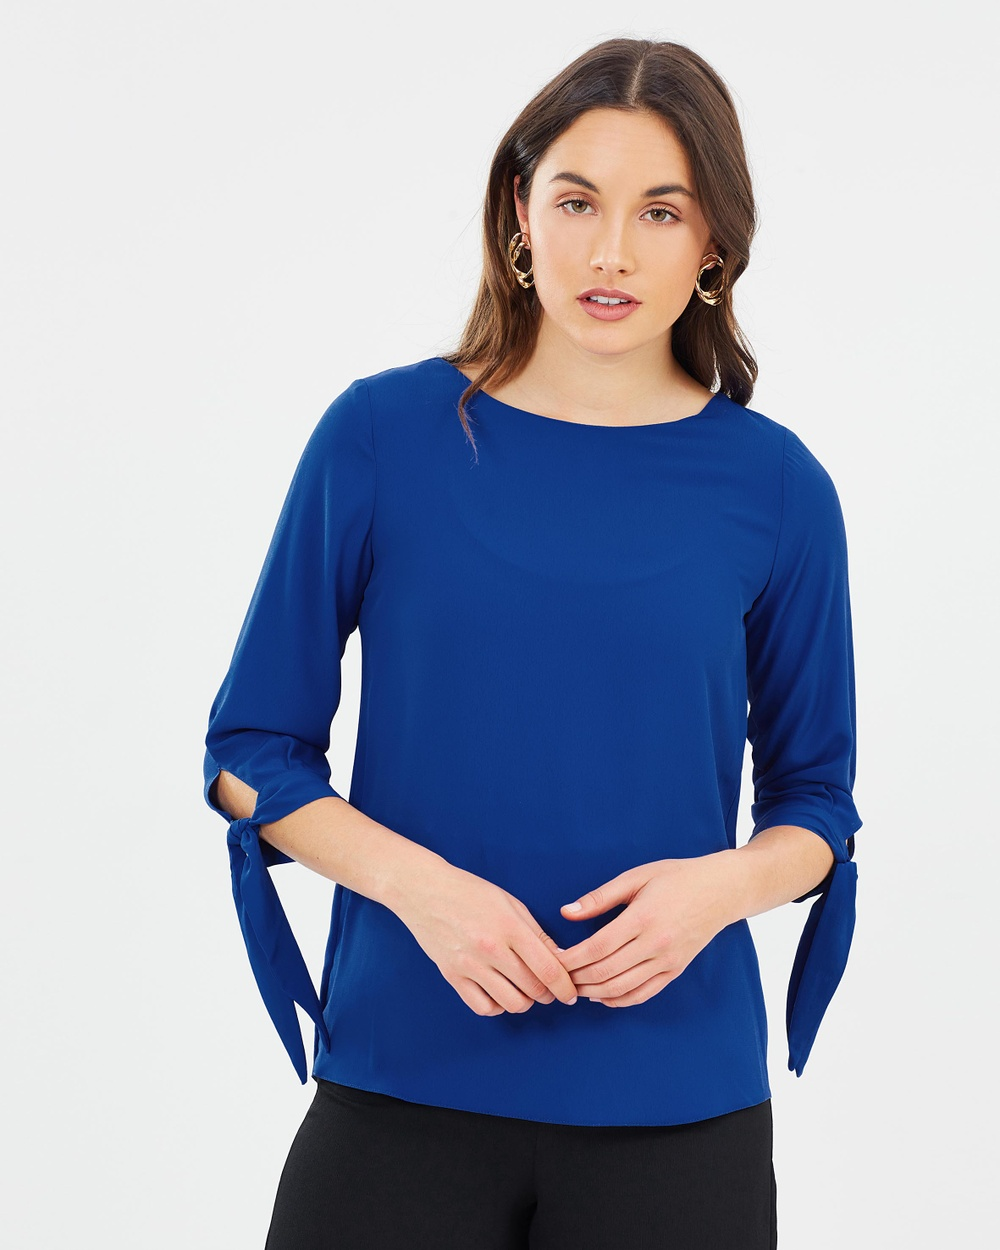 Dorothy Perkins 3 4 Tie Sleeve Top Tops Blue 3-4 Tie Sleeve Top